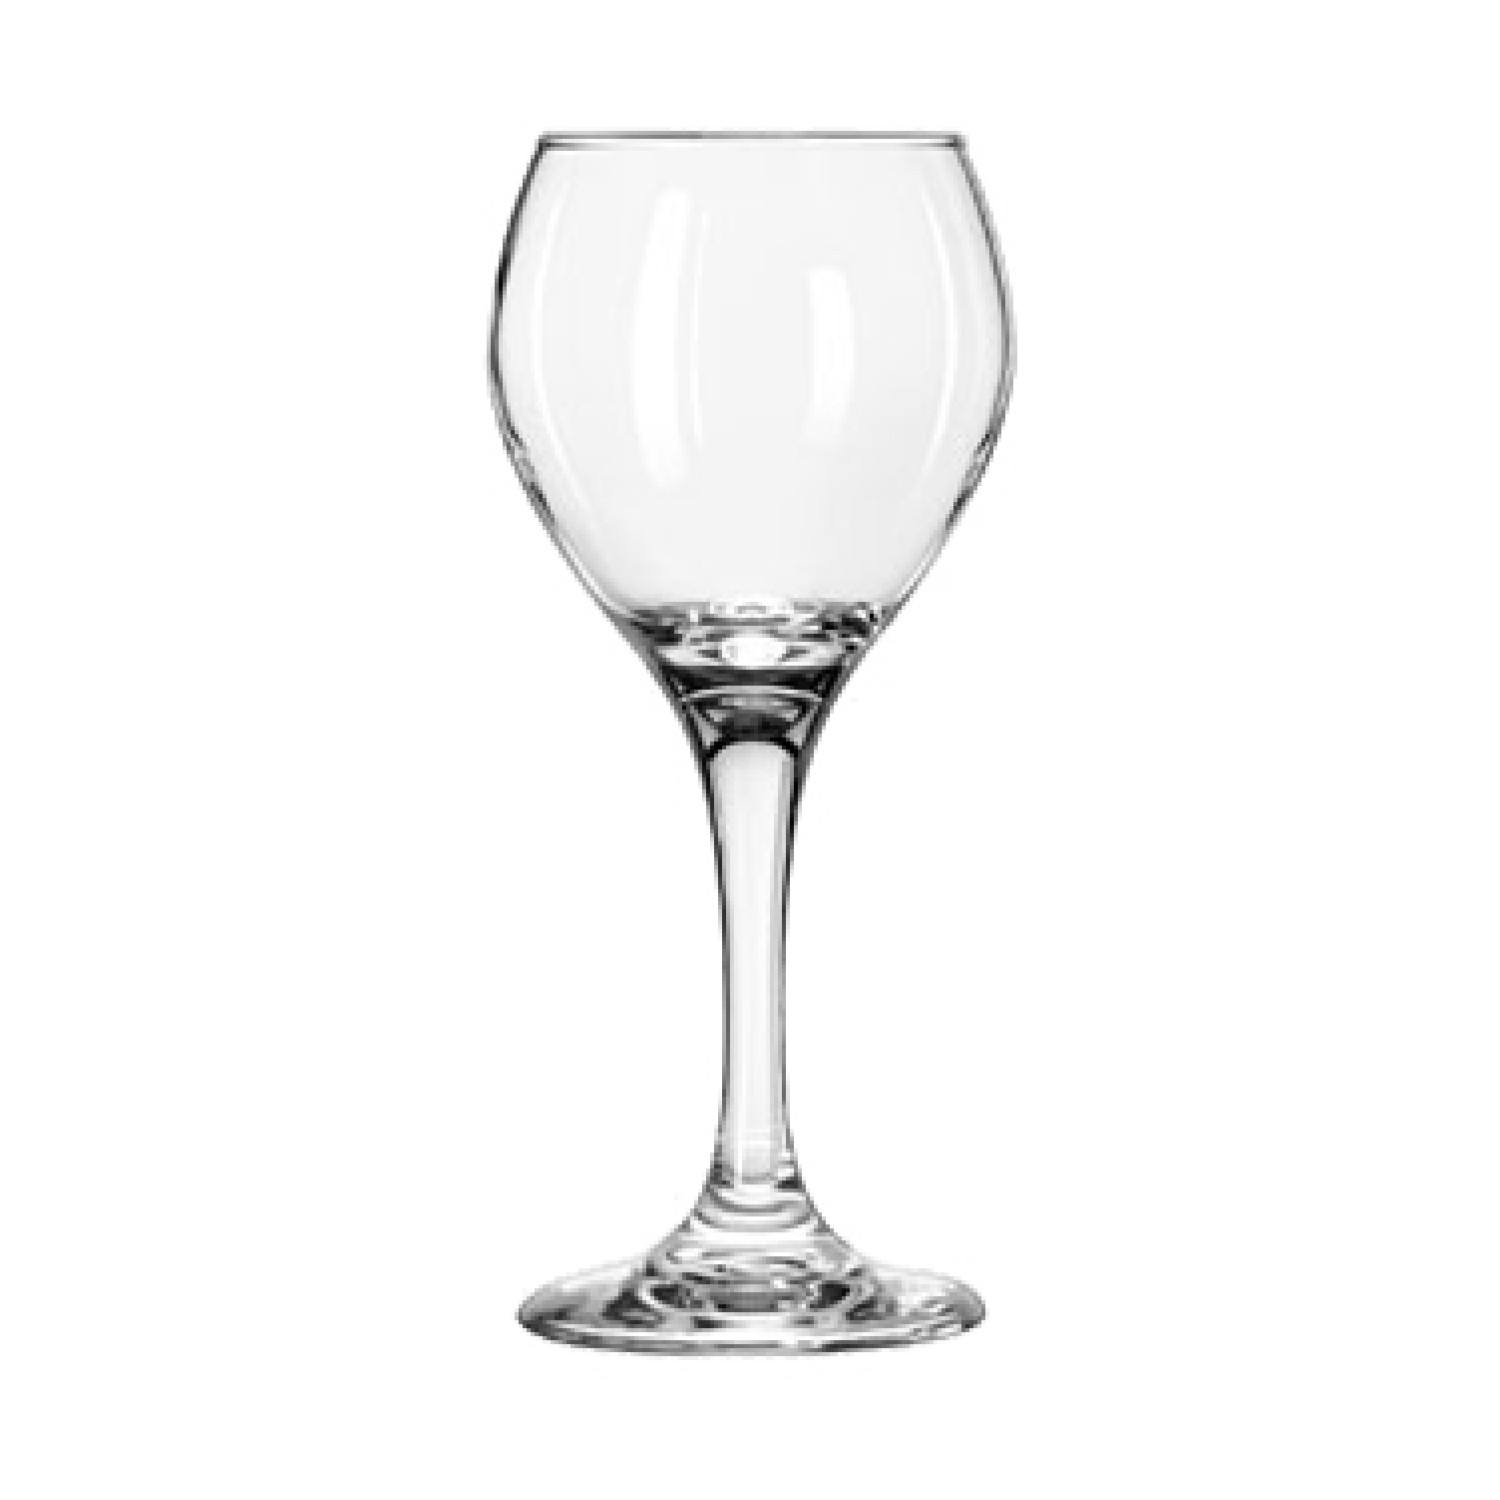 Libbey 3064 Perception Red Wine Glass 8 oz. - 2 doz